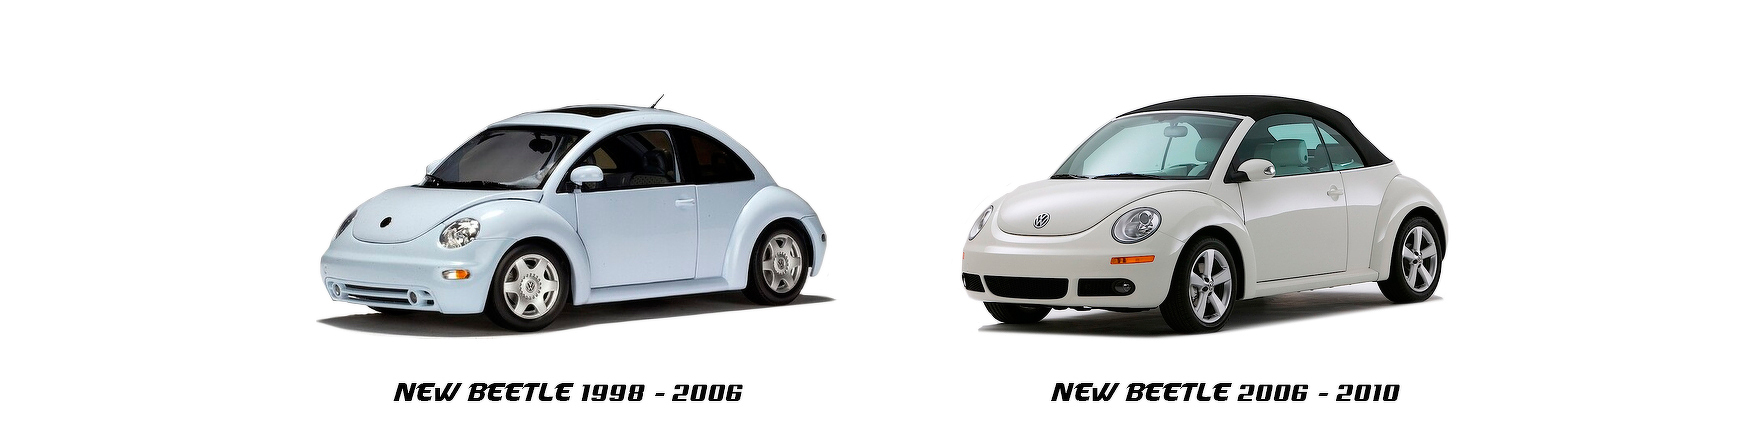 volkswagen vw new beetle 1998 1999 2000 2001 2002 2003 2004 2005